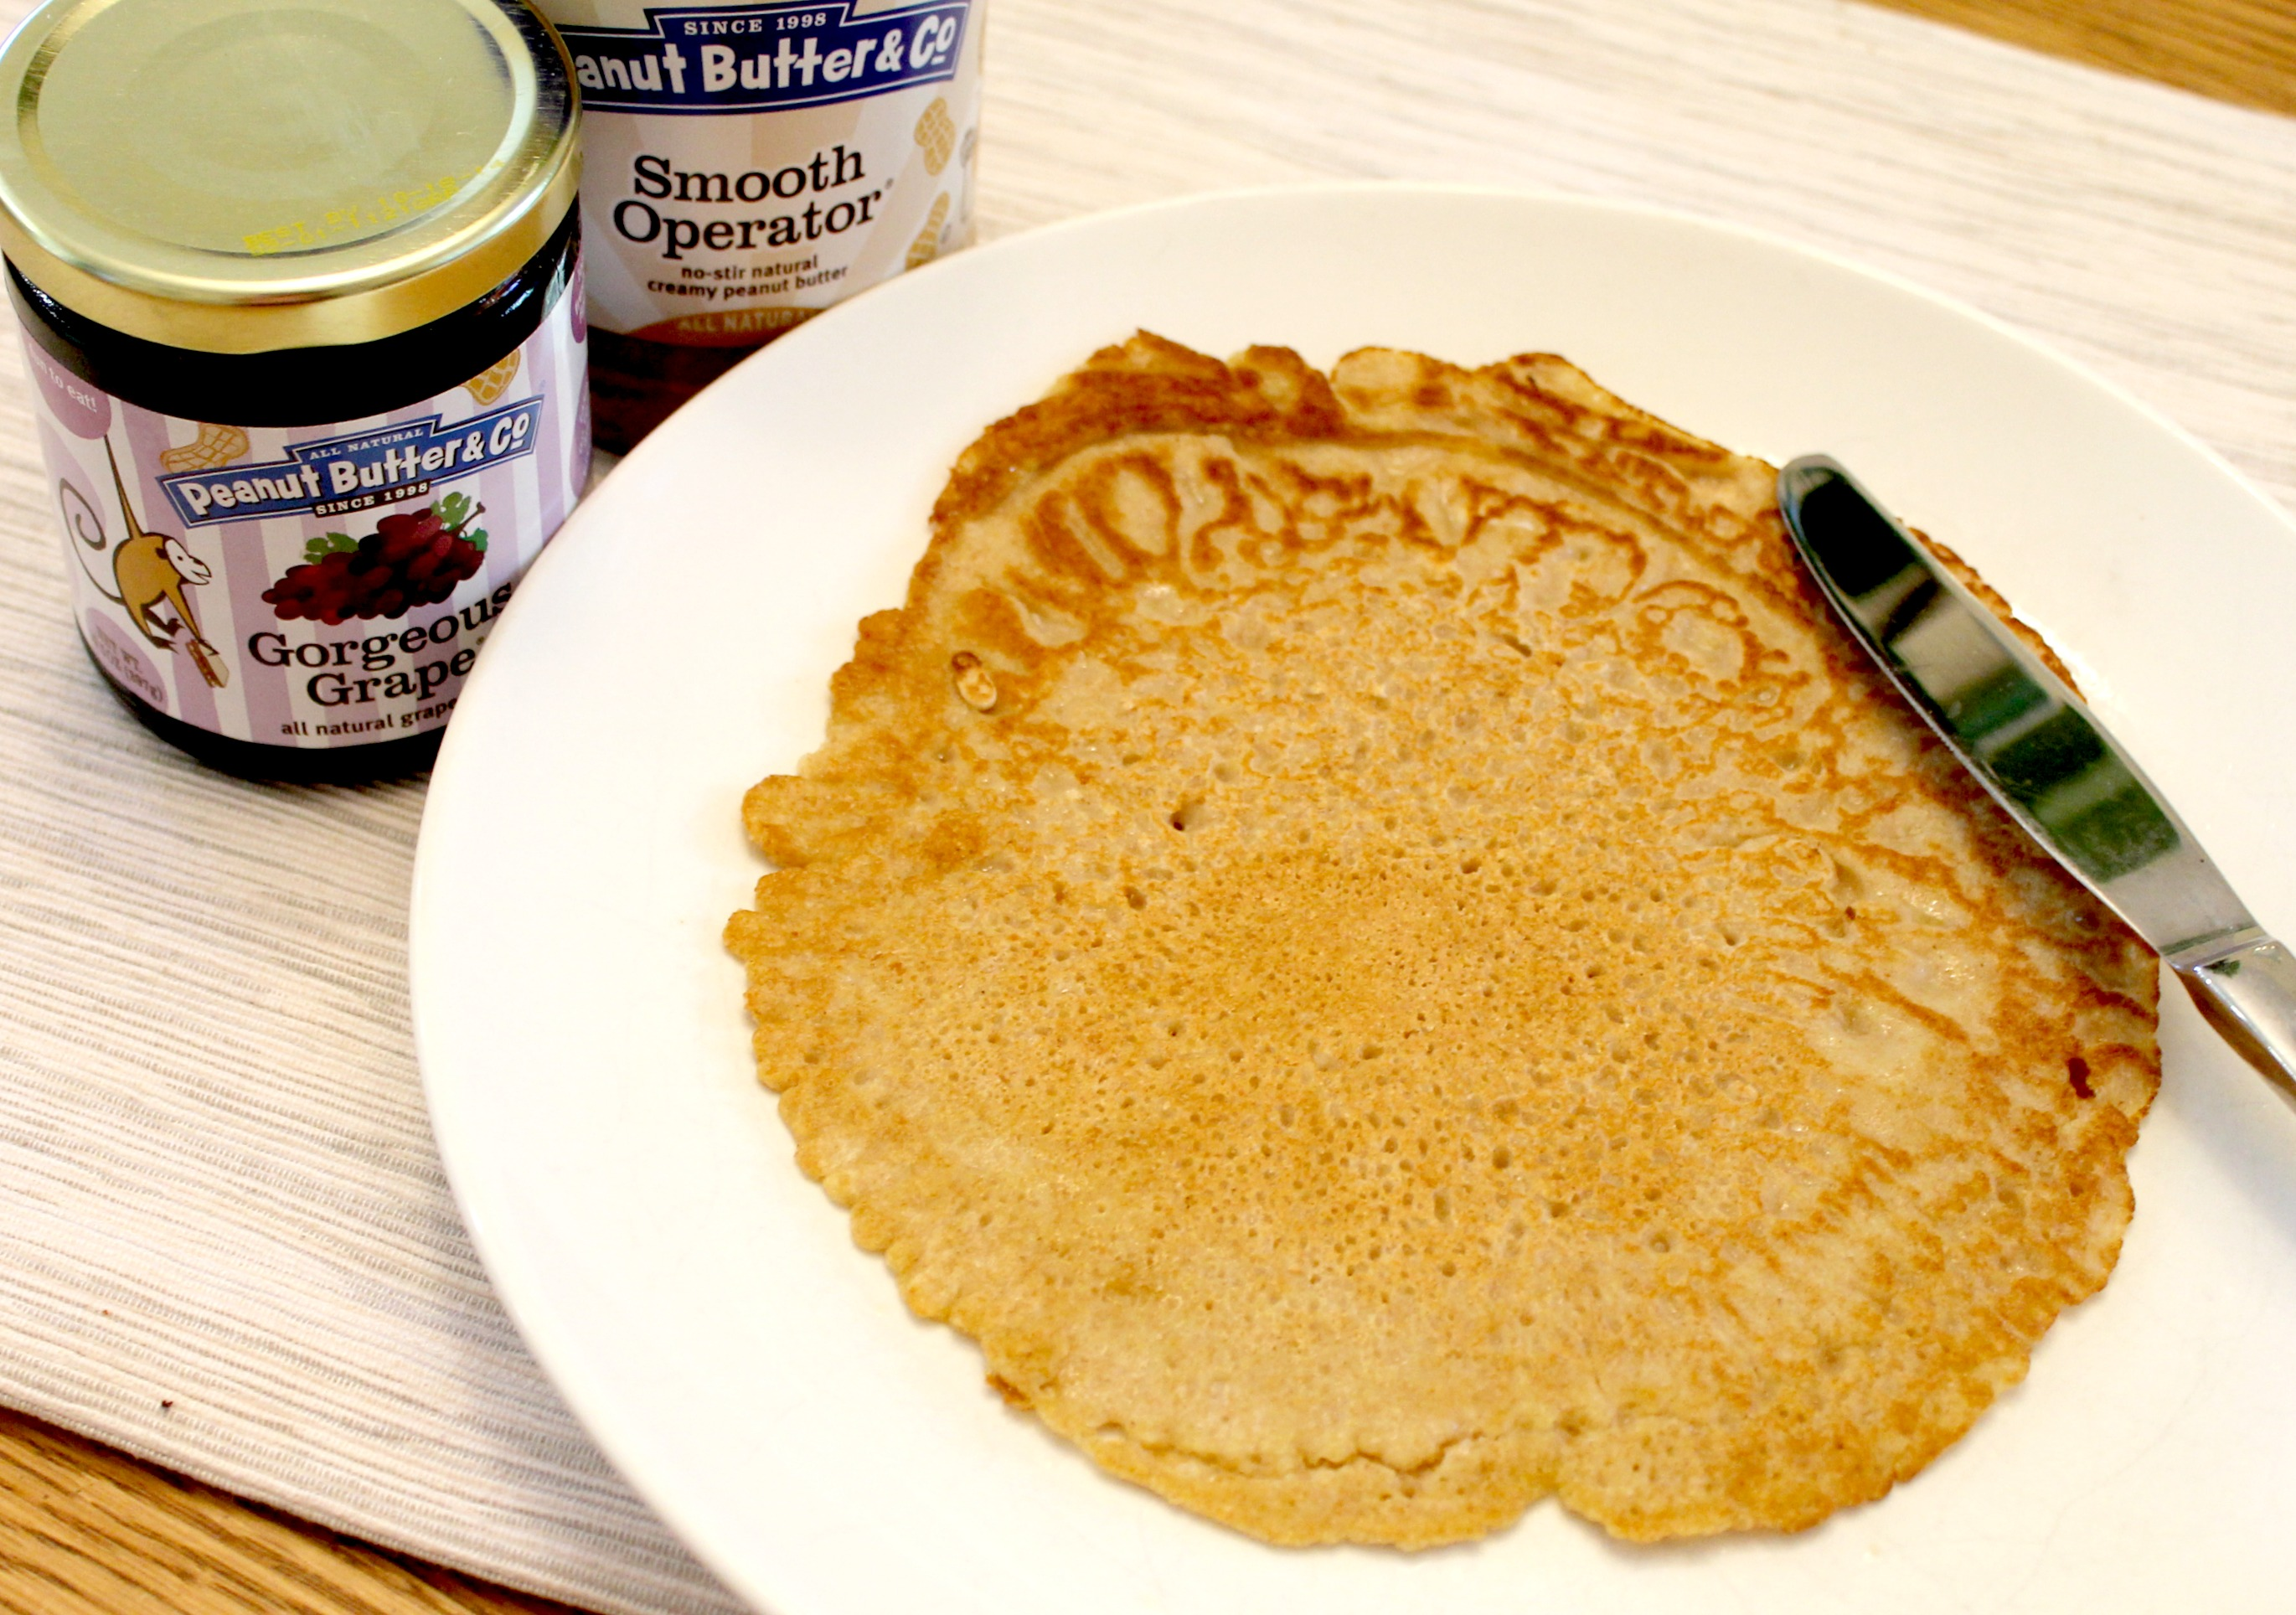 Peanut-Butter-and-Jelly-Crepes-Jams.jpg